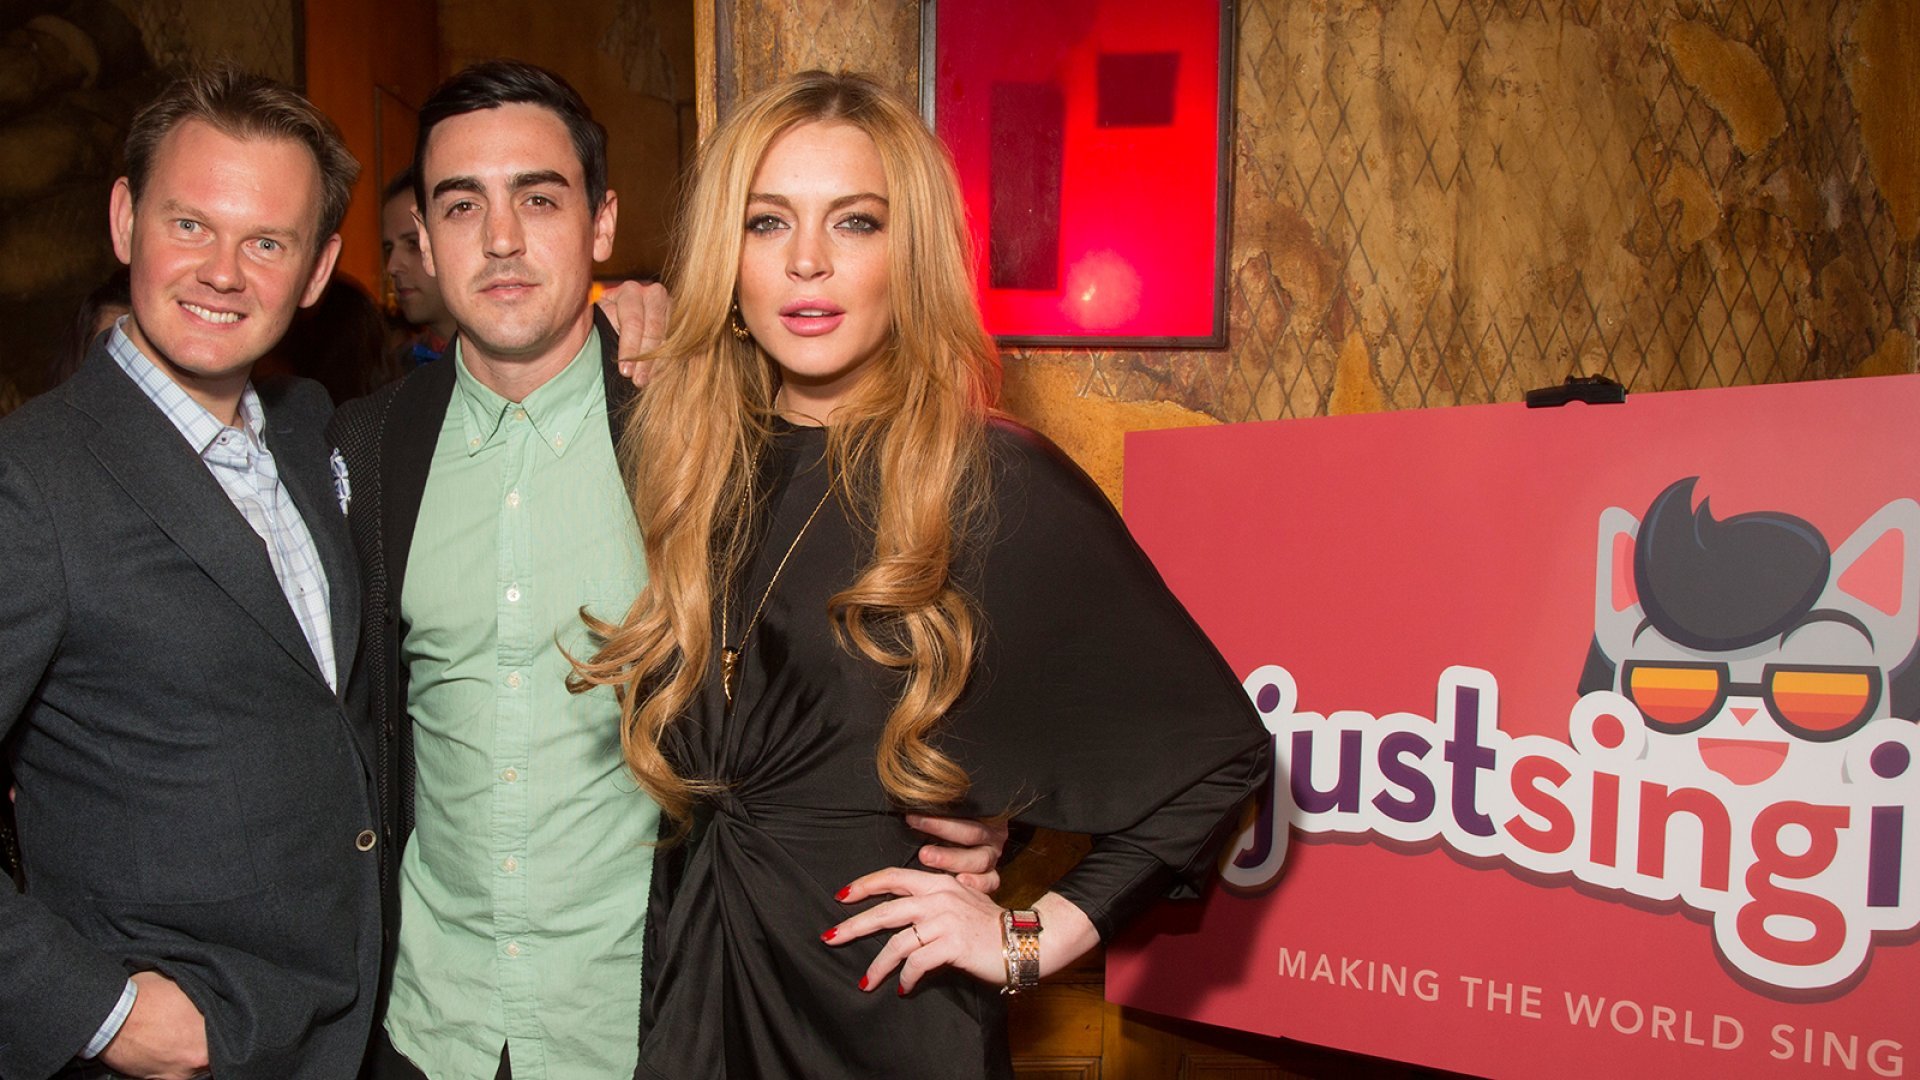 Selfies With Lindsay Lohan and the State of Tech